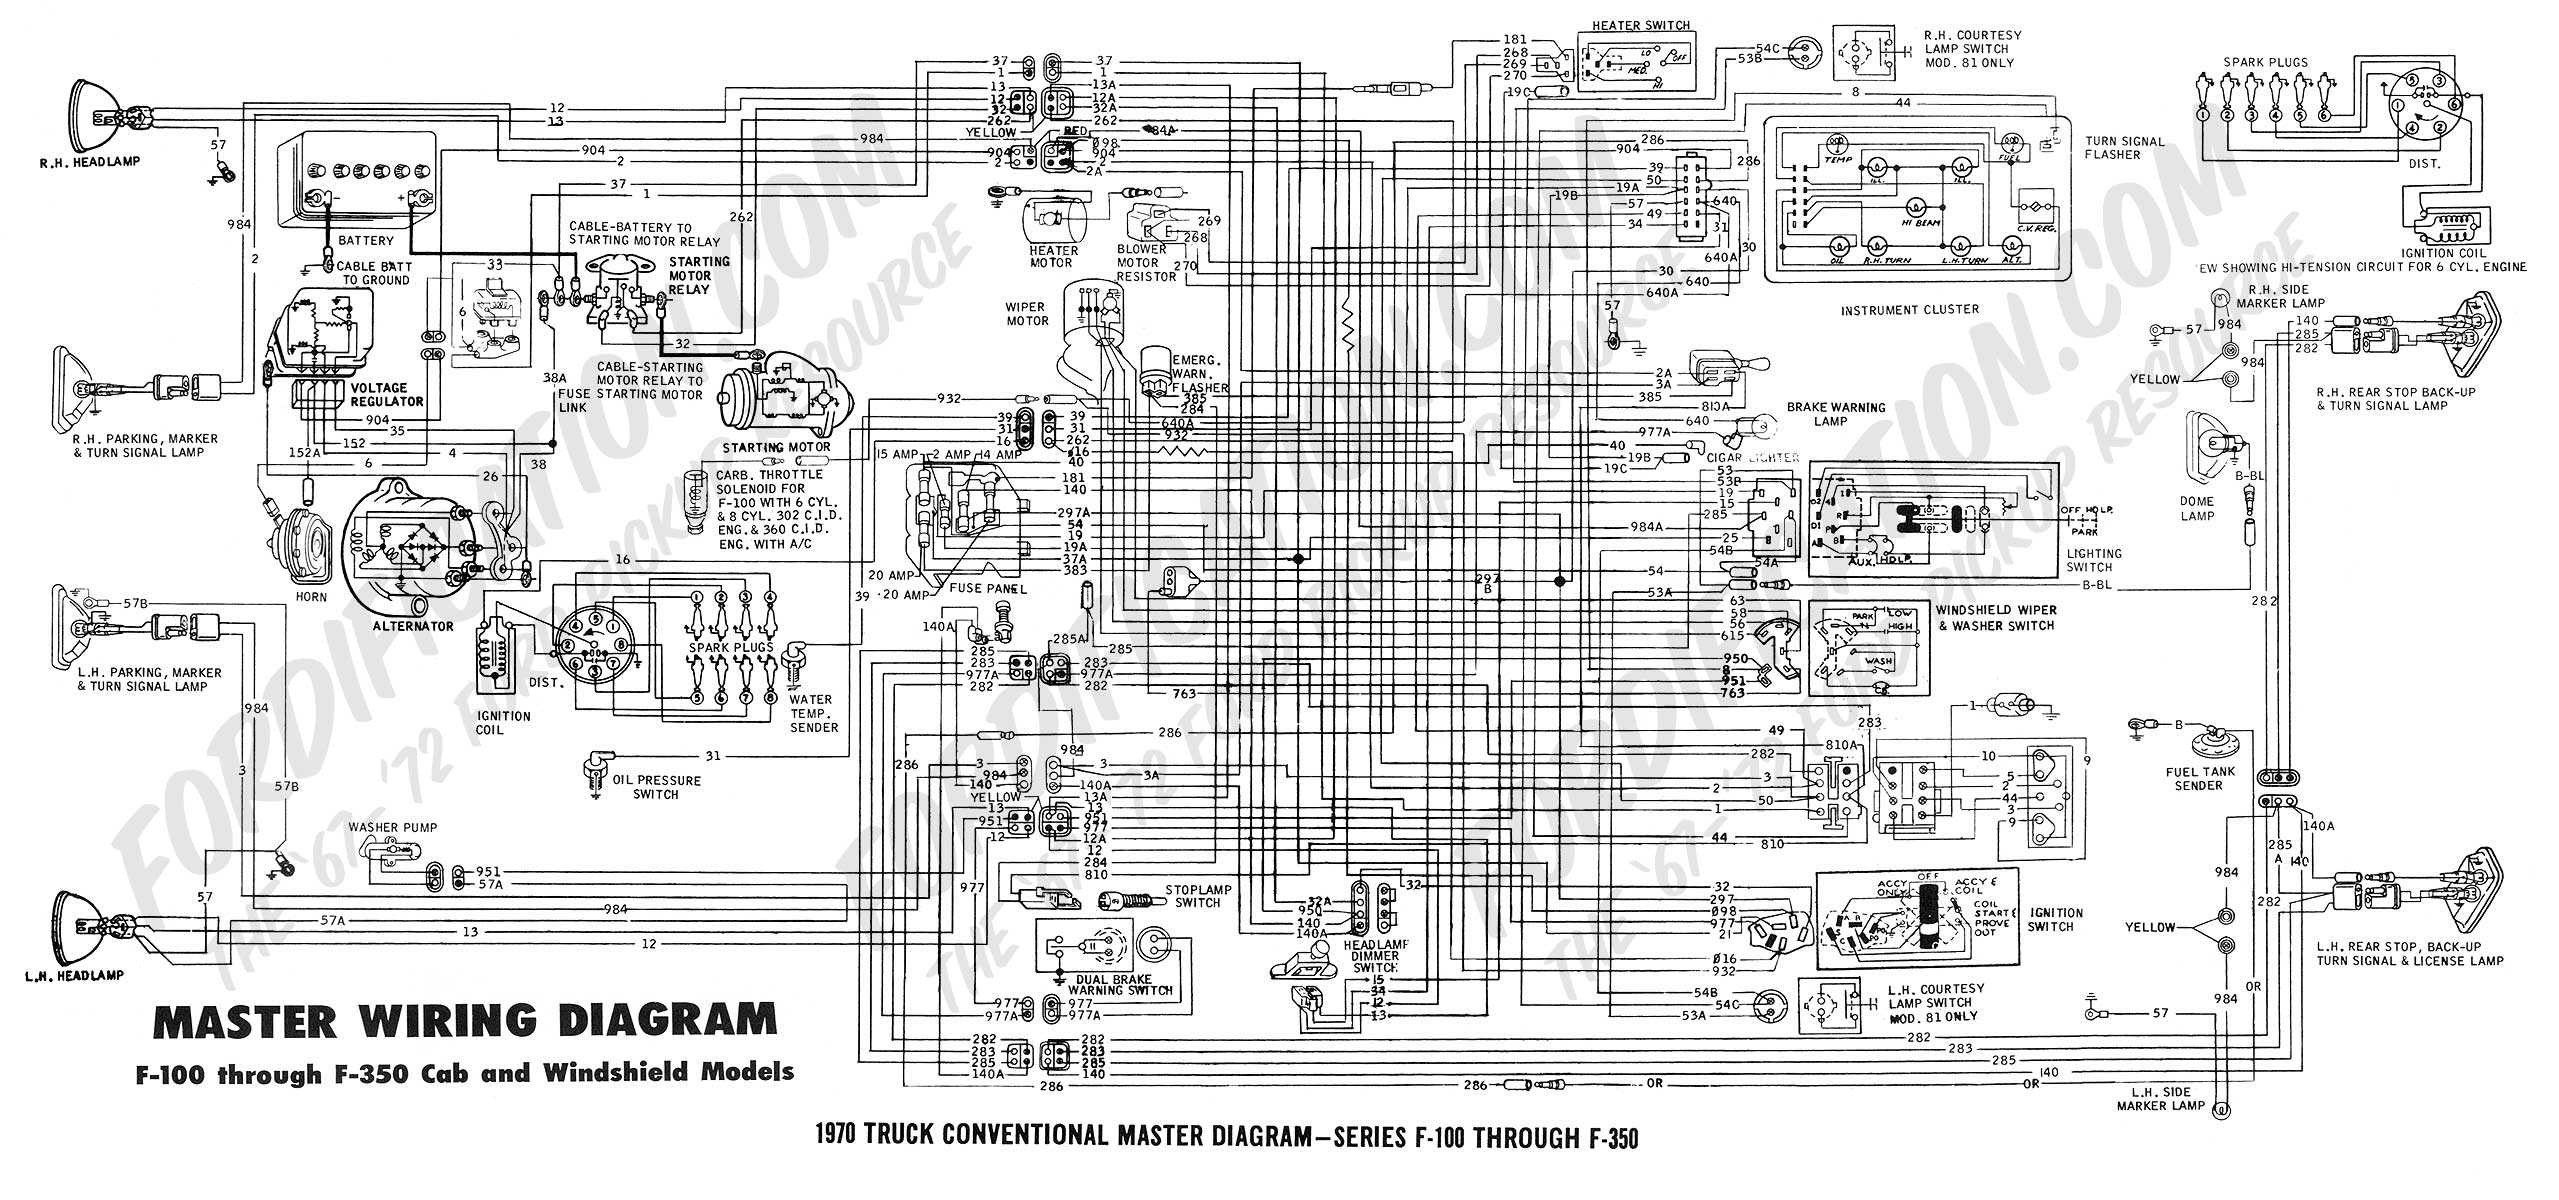 F250 Wiring Diagram - Wiring Diagrams Hubs - 2006 Ford F350 Trailer Wiring Diagram